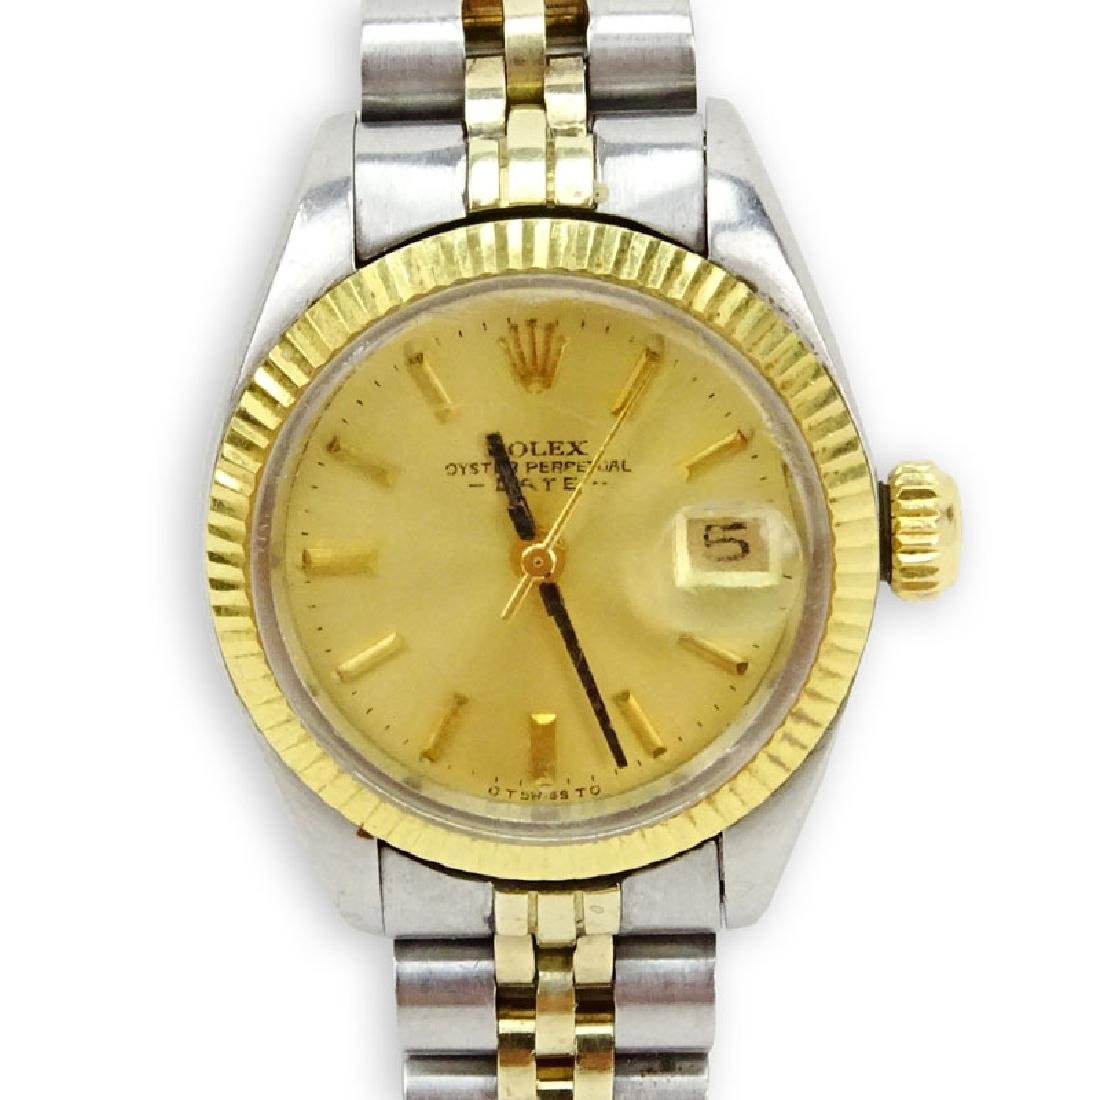 Lady's Vintage Rolex Oyster Perpetual Date Stainless